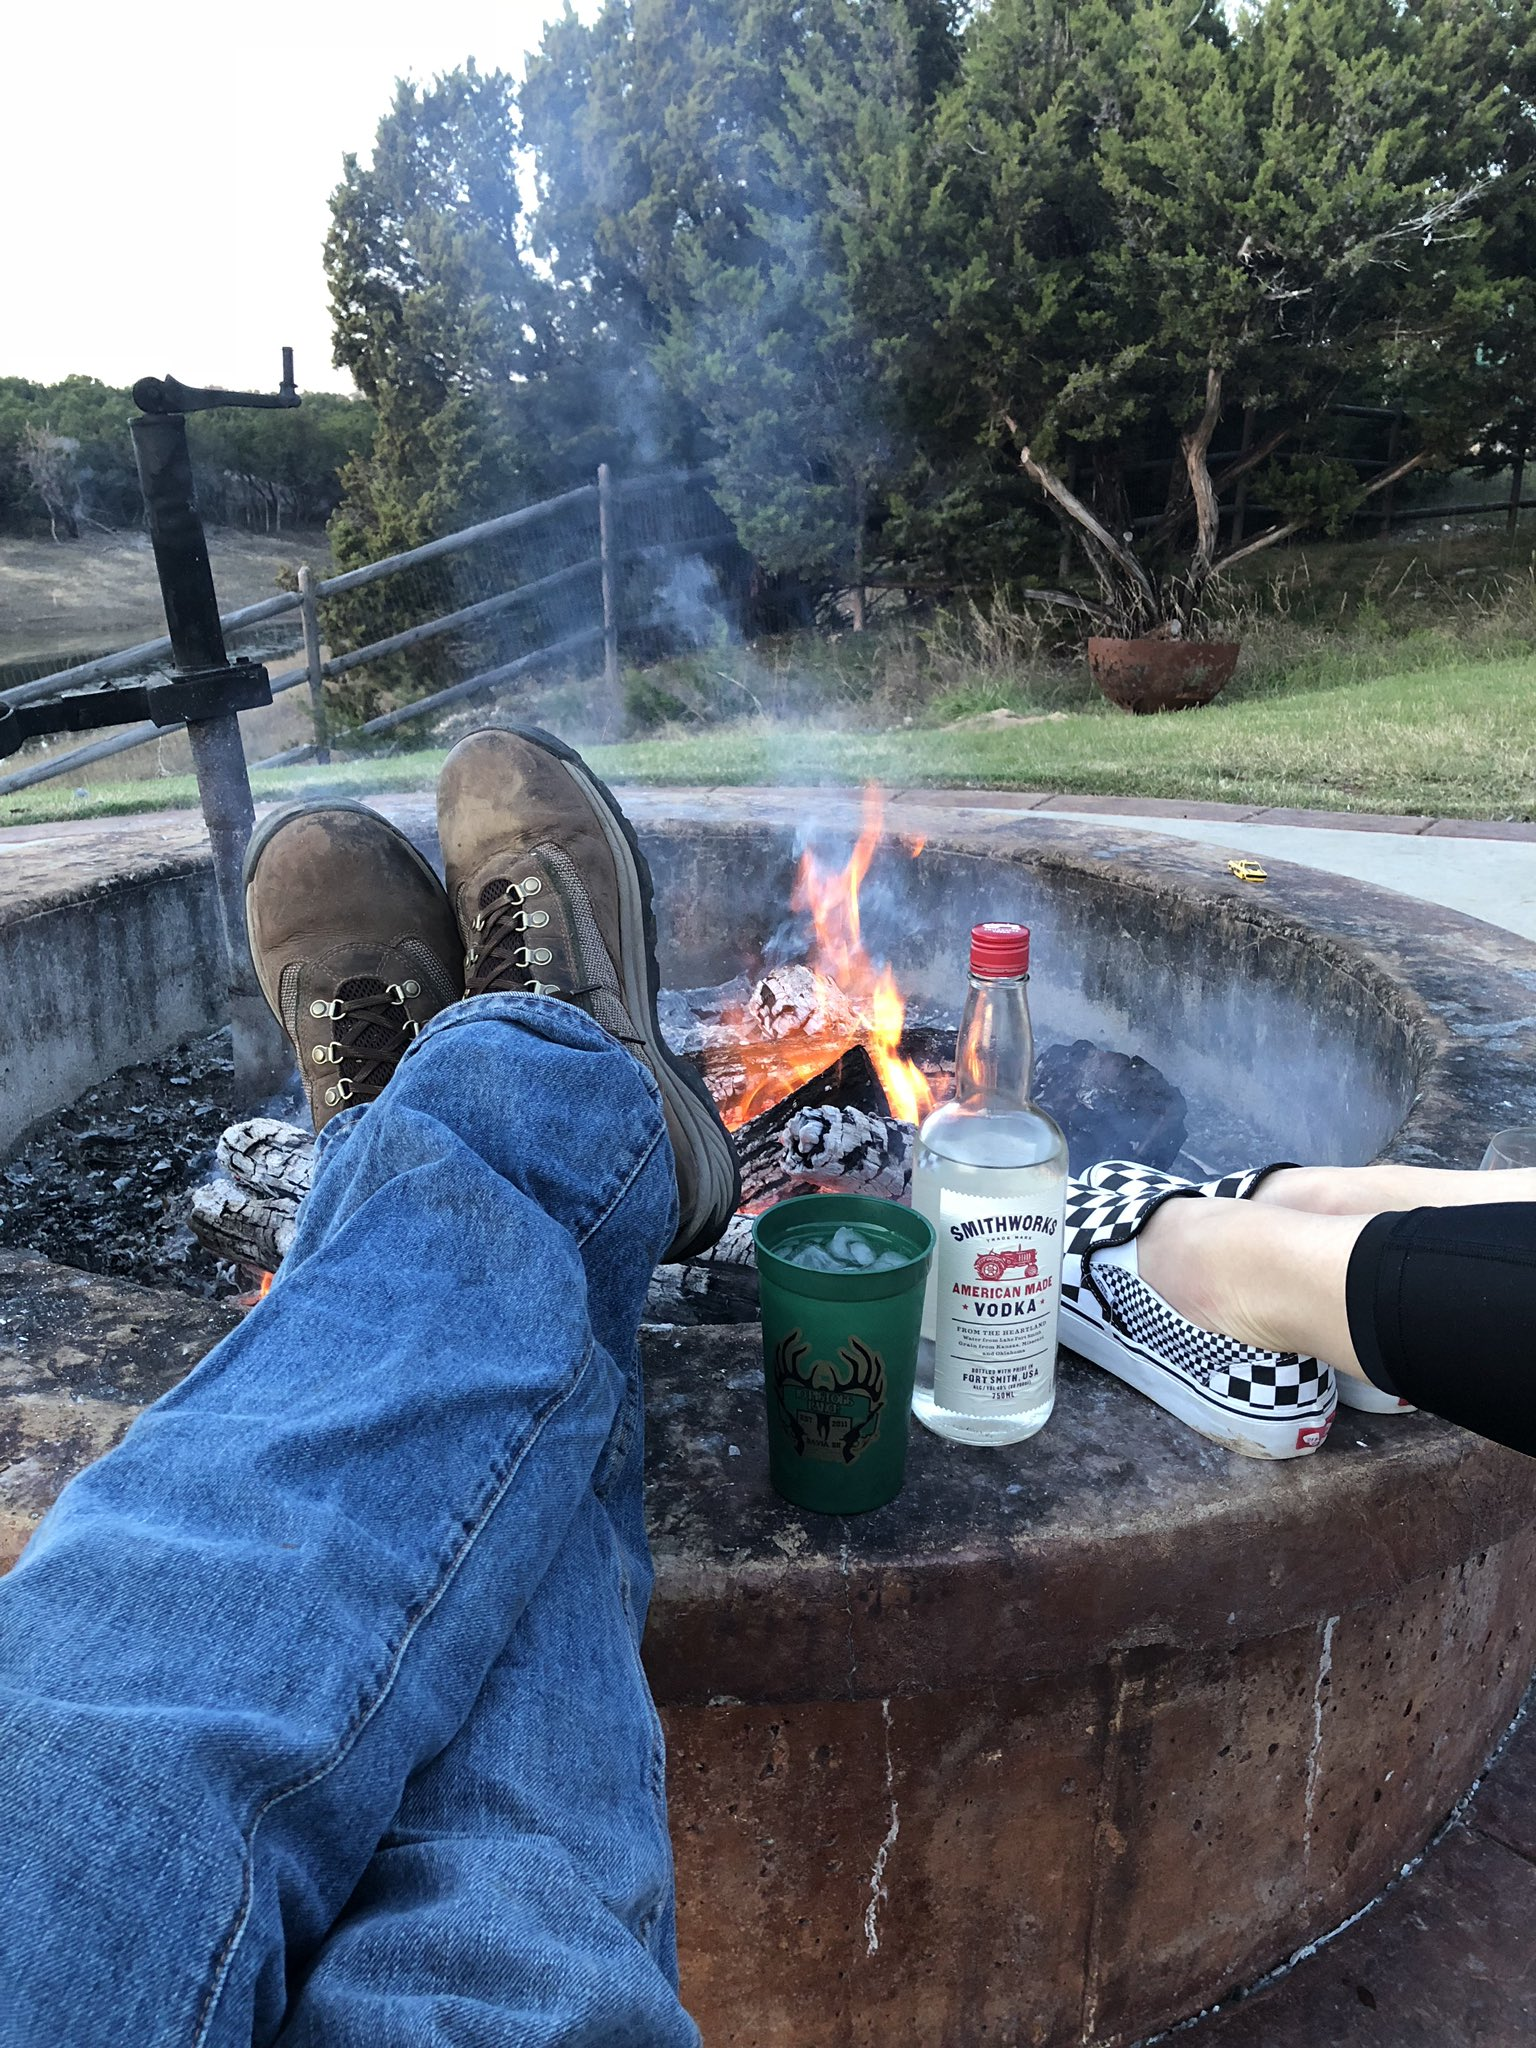 My god I love fall... And @SmithworksVodka.. And the girl in those checkered shoes.. https://t.co/H2Et0yACMt